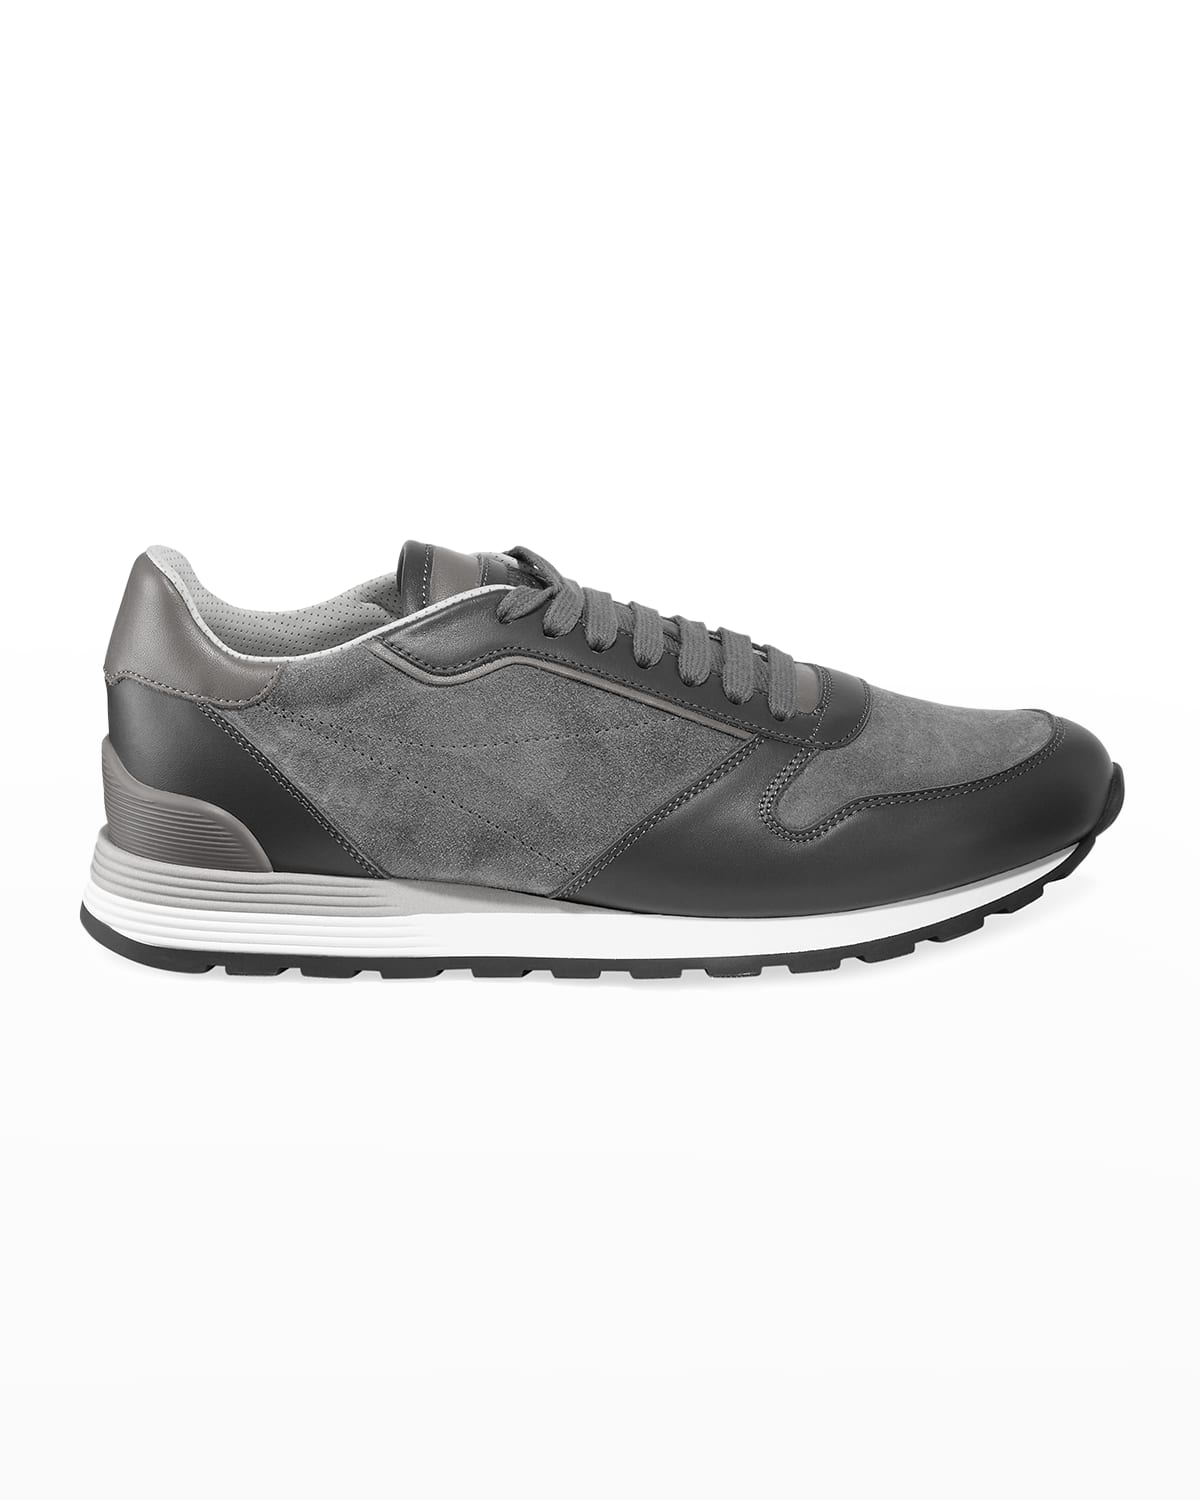 Men's Suede %26 Leather Athletic Sneakers